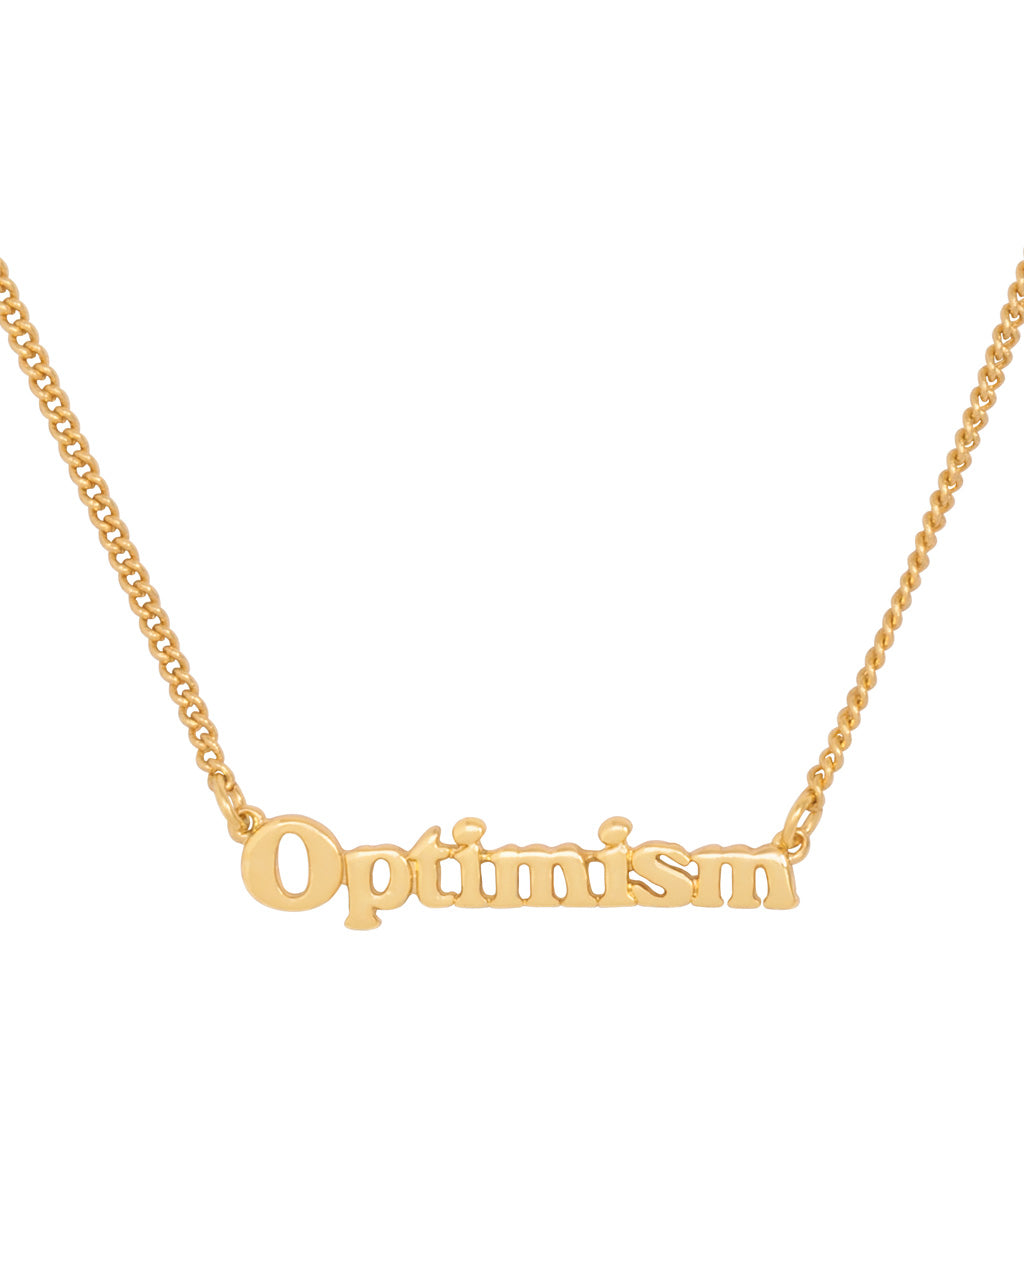 gold chain necklace with the word optimism